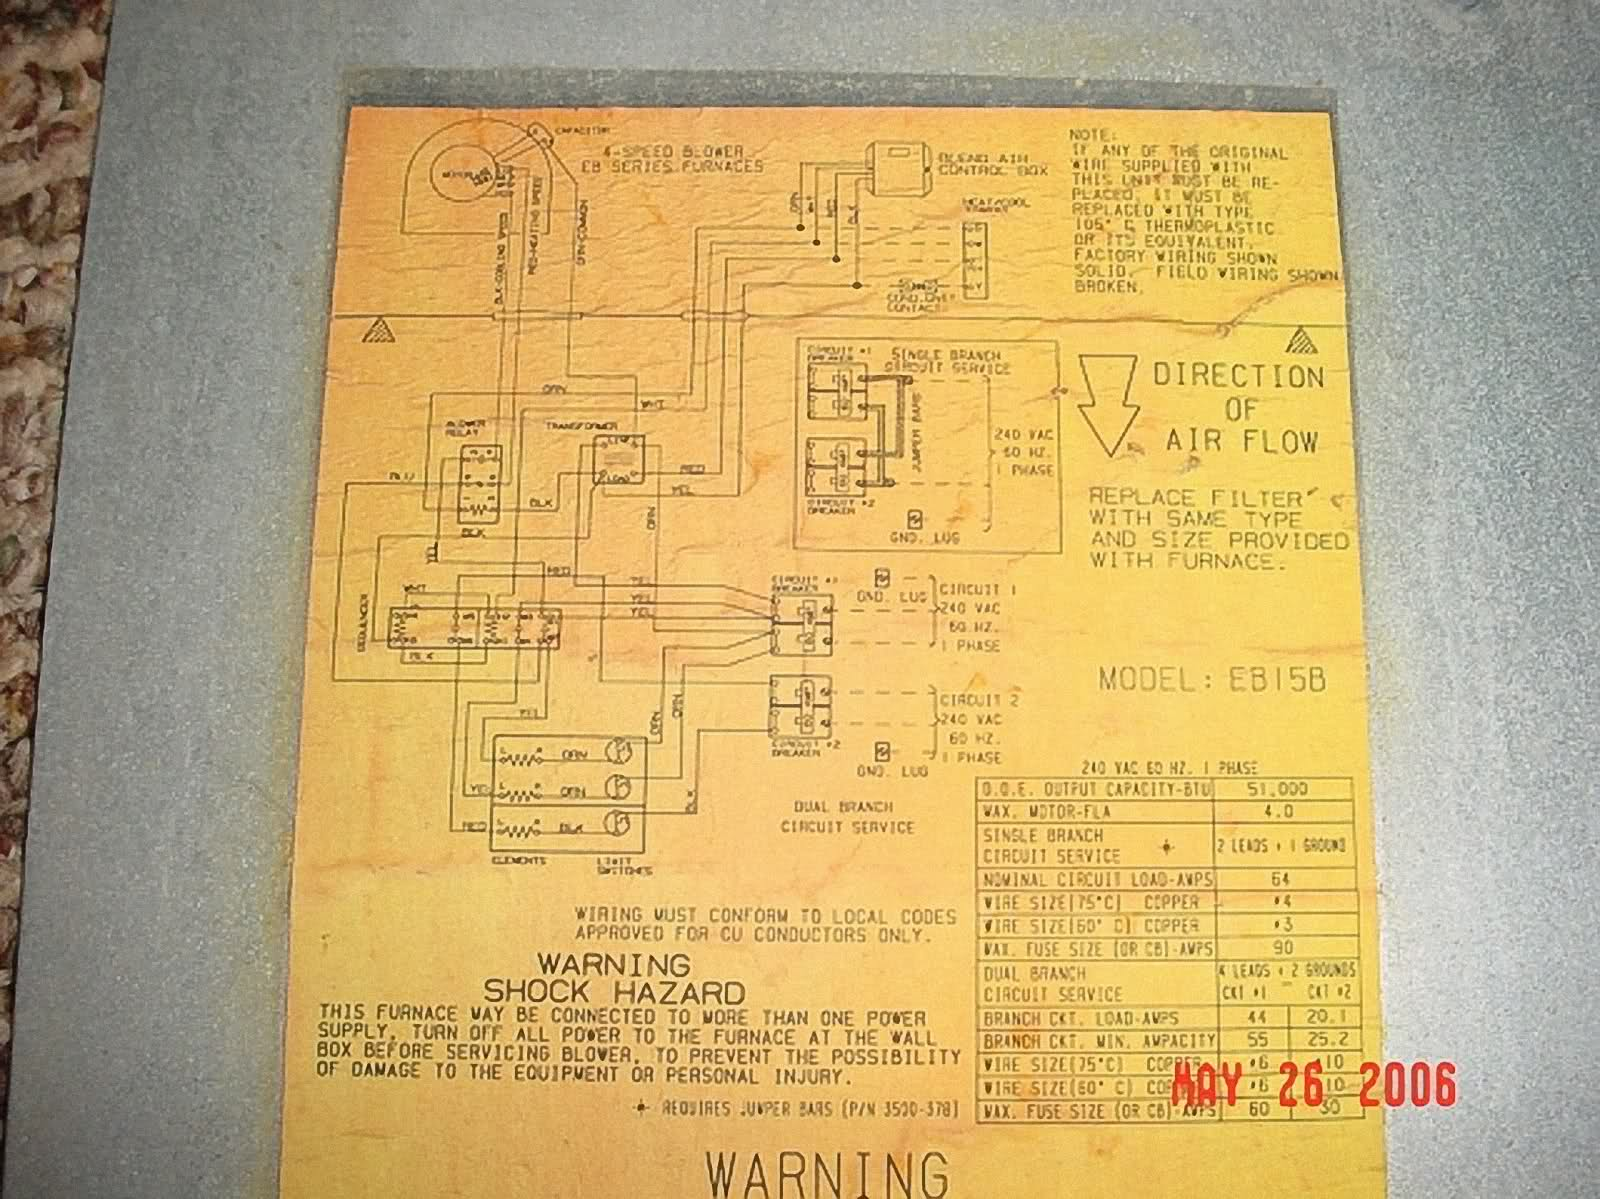 Wiring Schematic For Coleman Furnace Diagram Name Basic Eb15b Simple Gas Electric